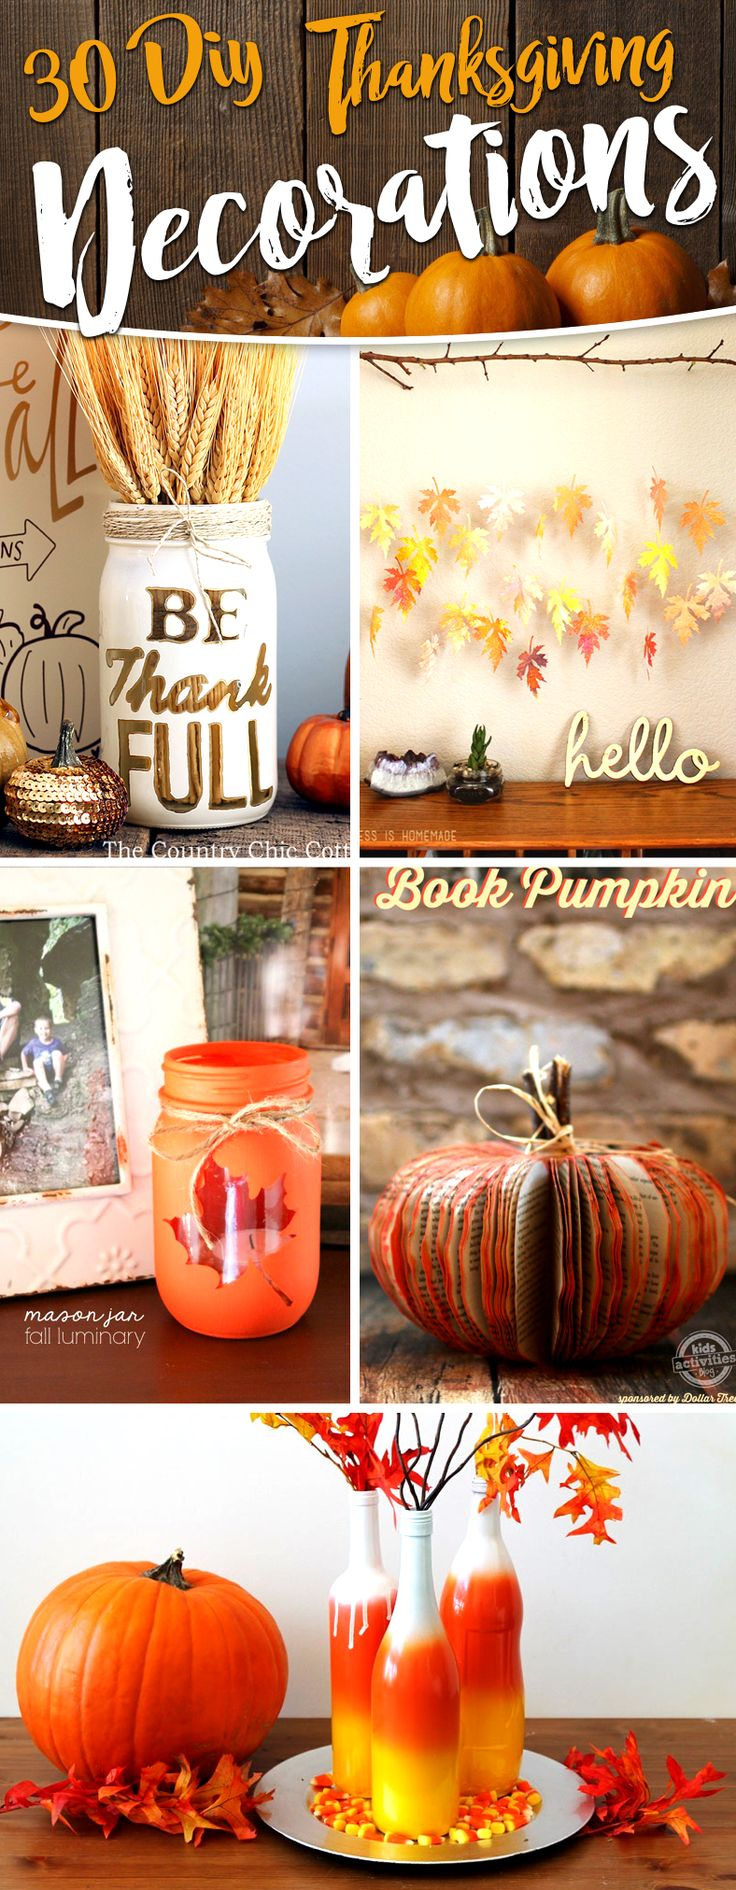 17 Best ideas about Thanksgiving Decorations on